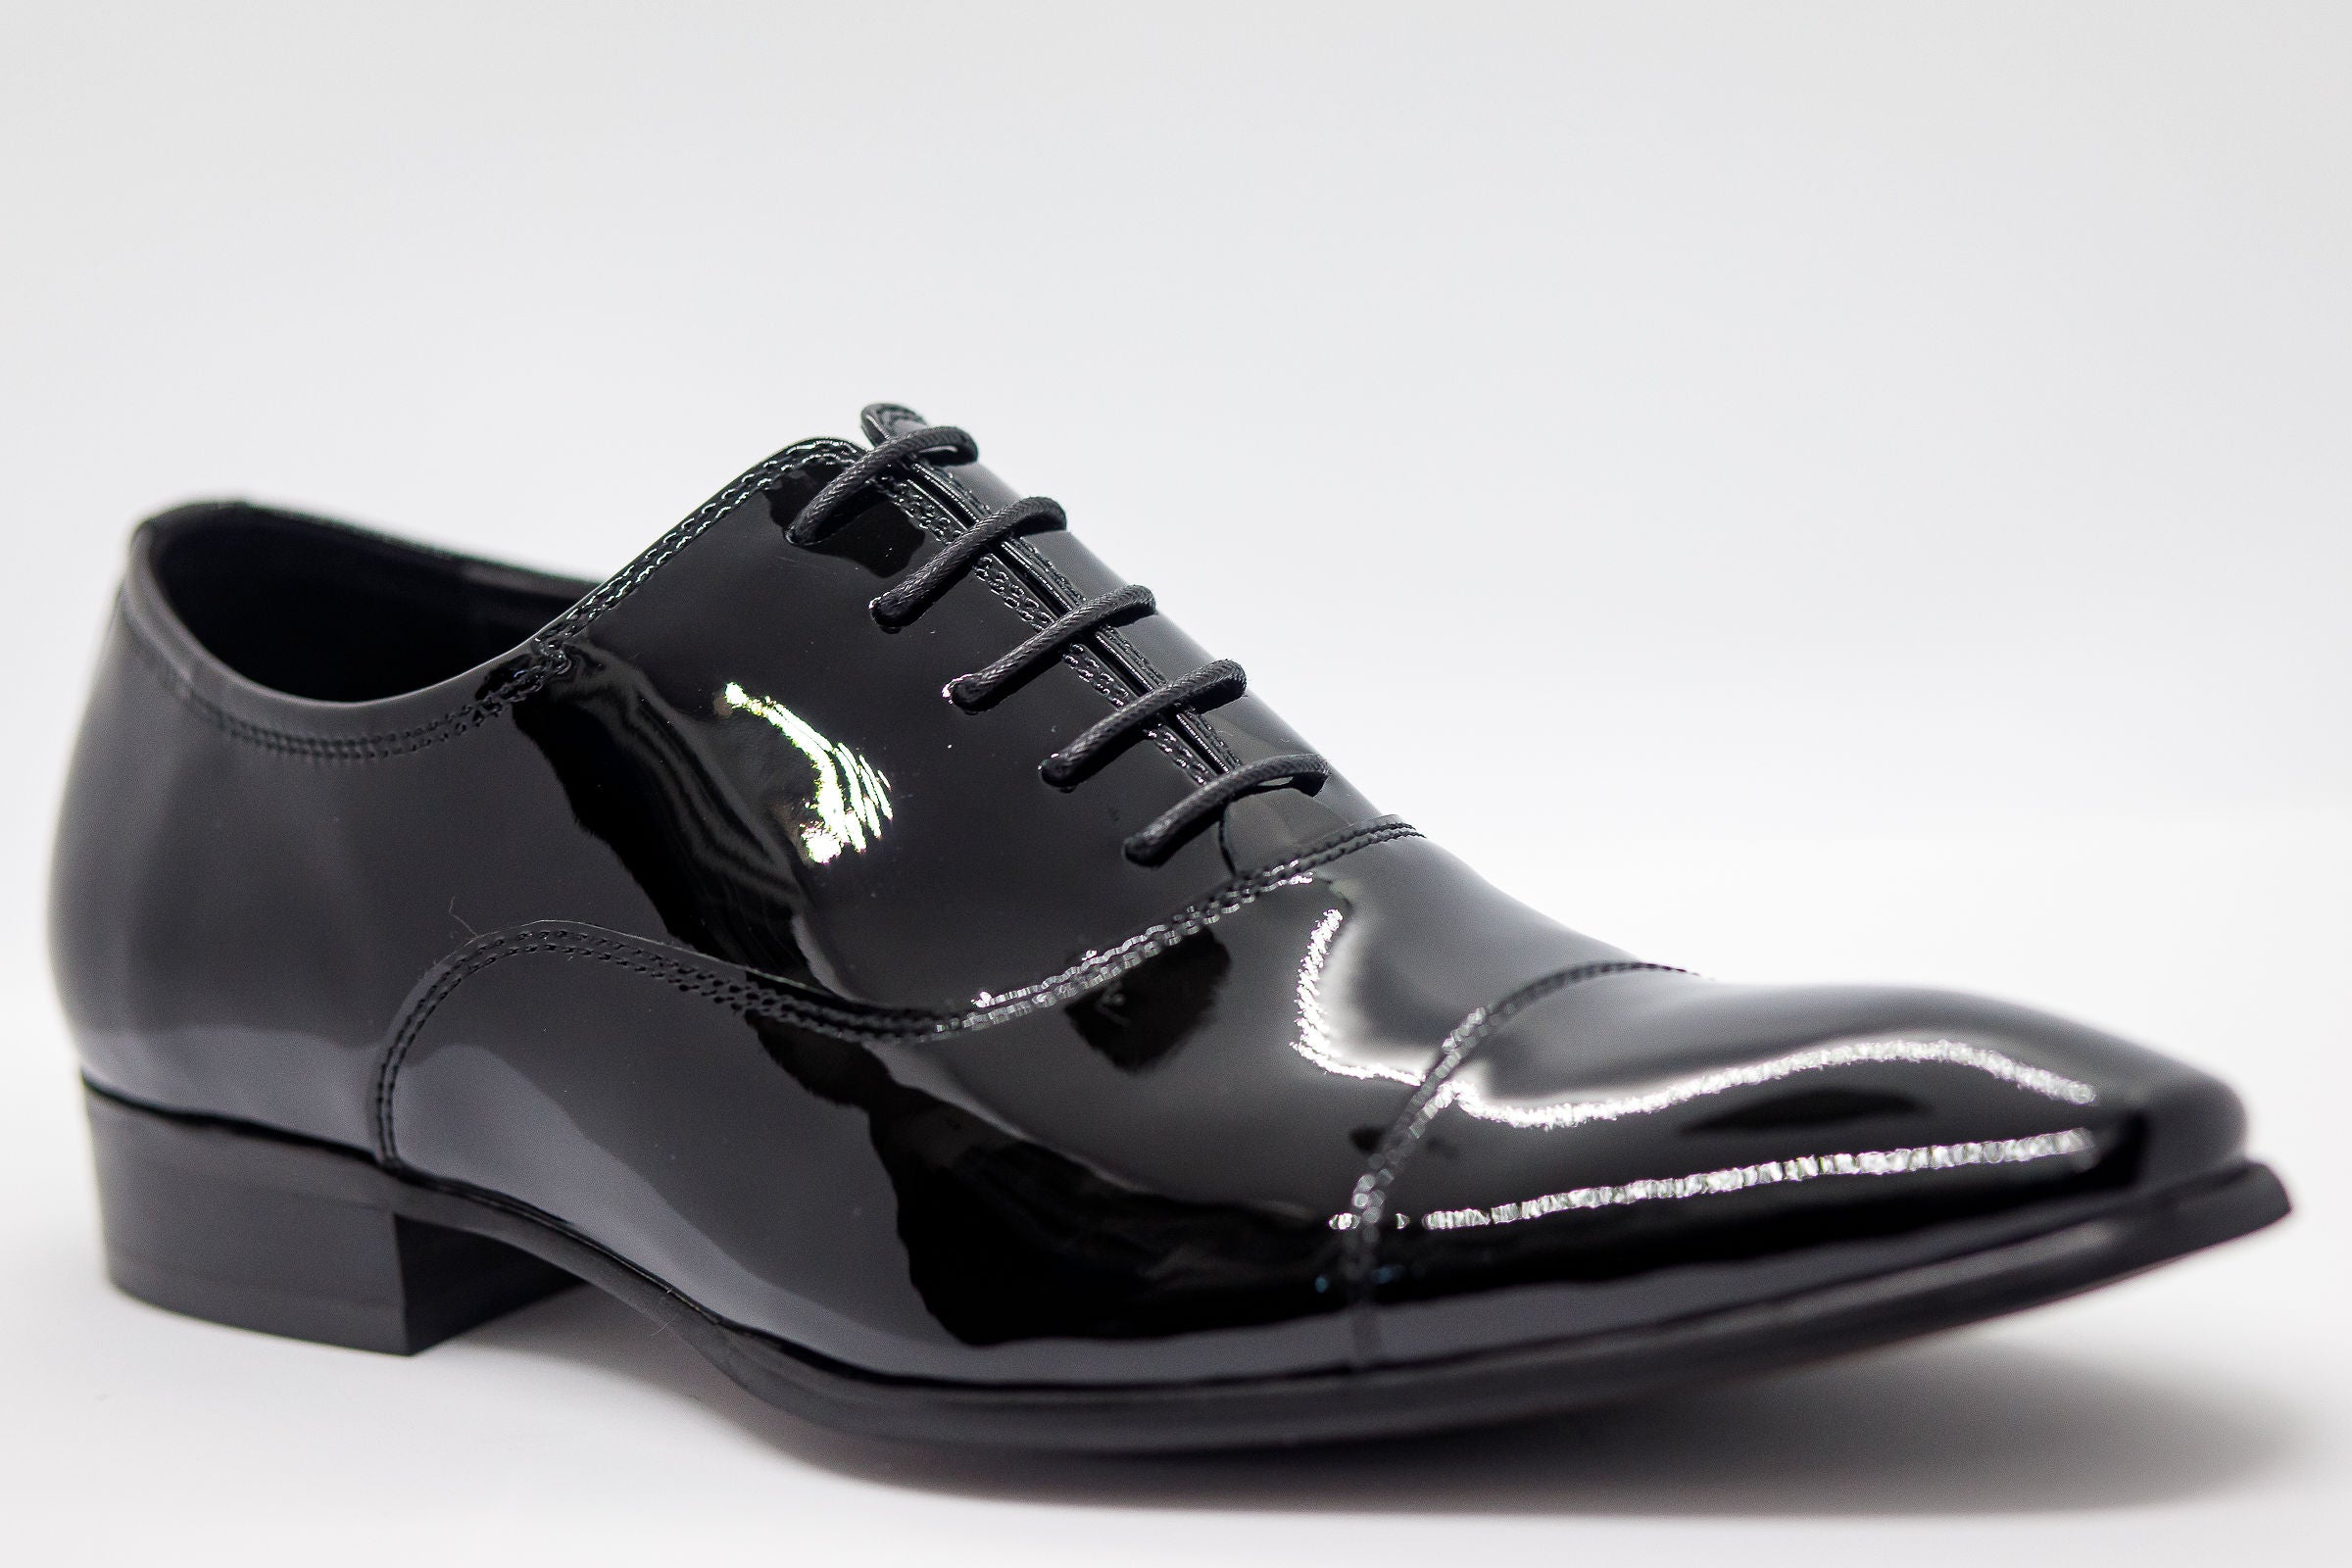 Patent Leather Classic Oxford - Black - Eaden Myles